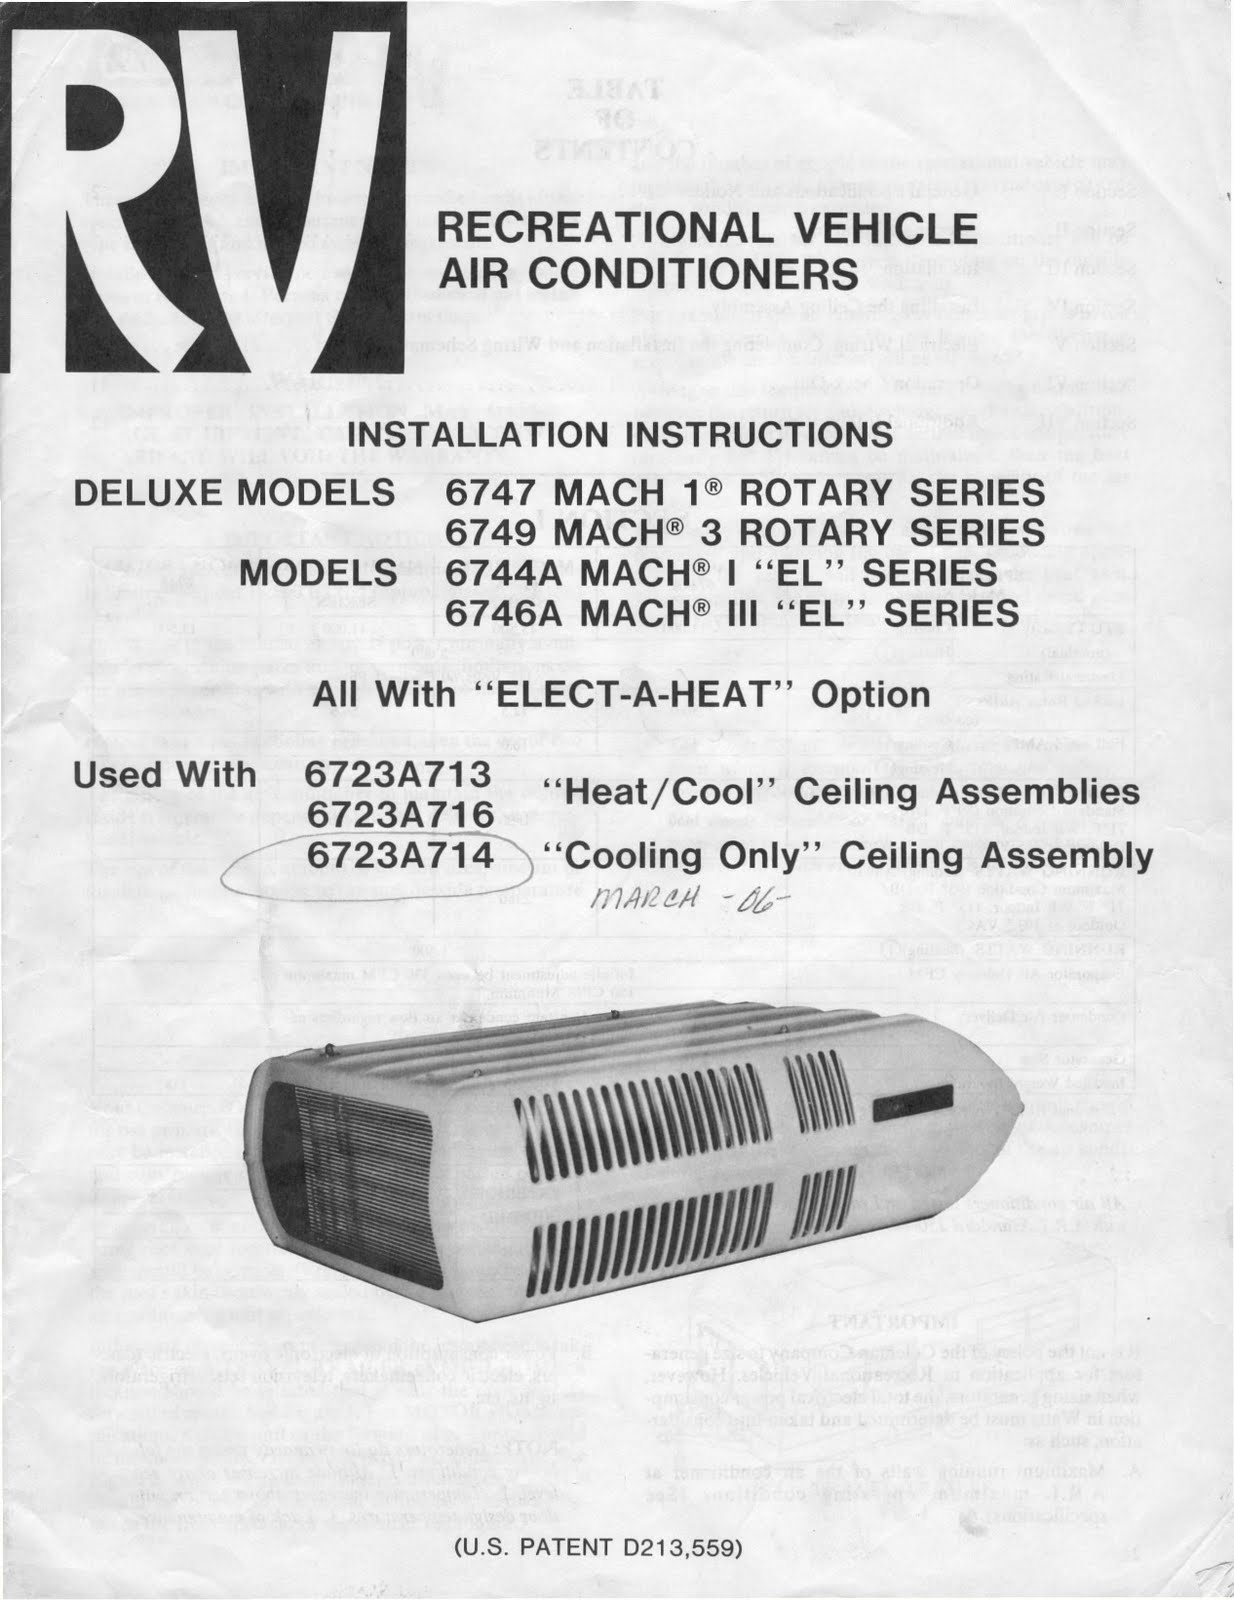 1983 fleetwood pace arrow owners manuals rv air conditioners rv air conditioners coleman mach 1 3 1el 3 el